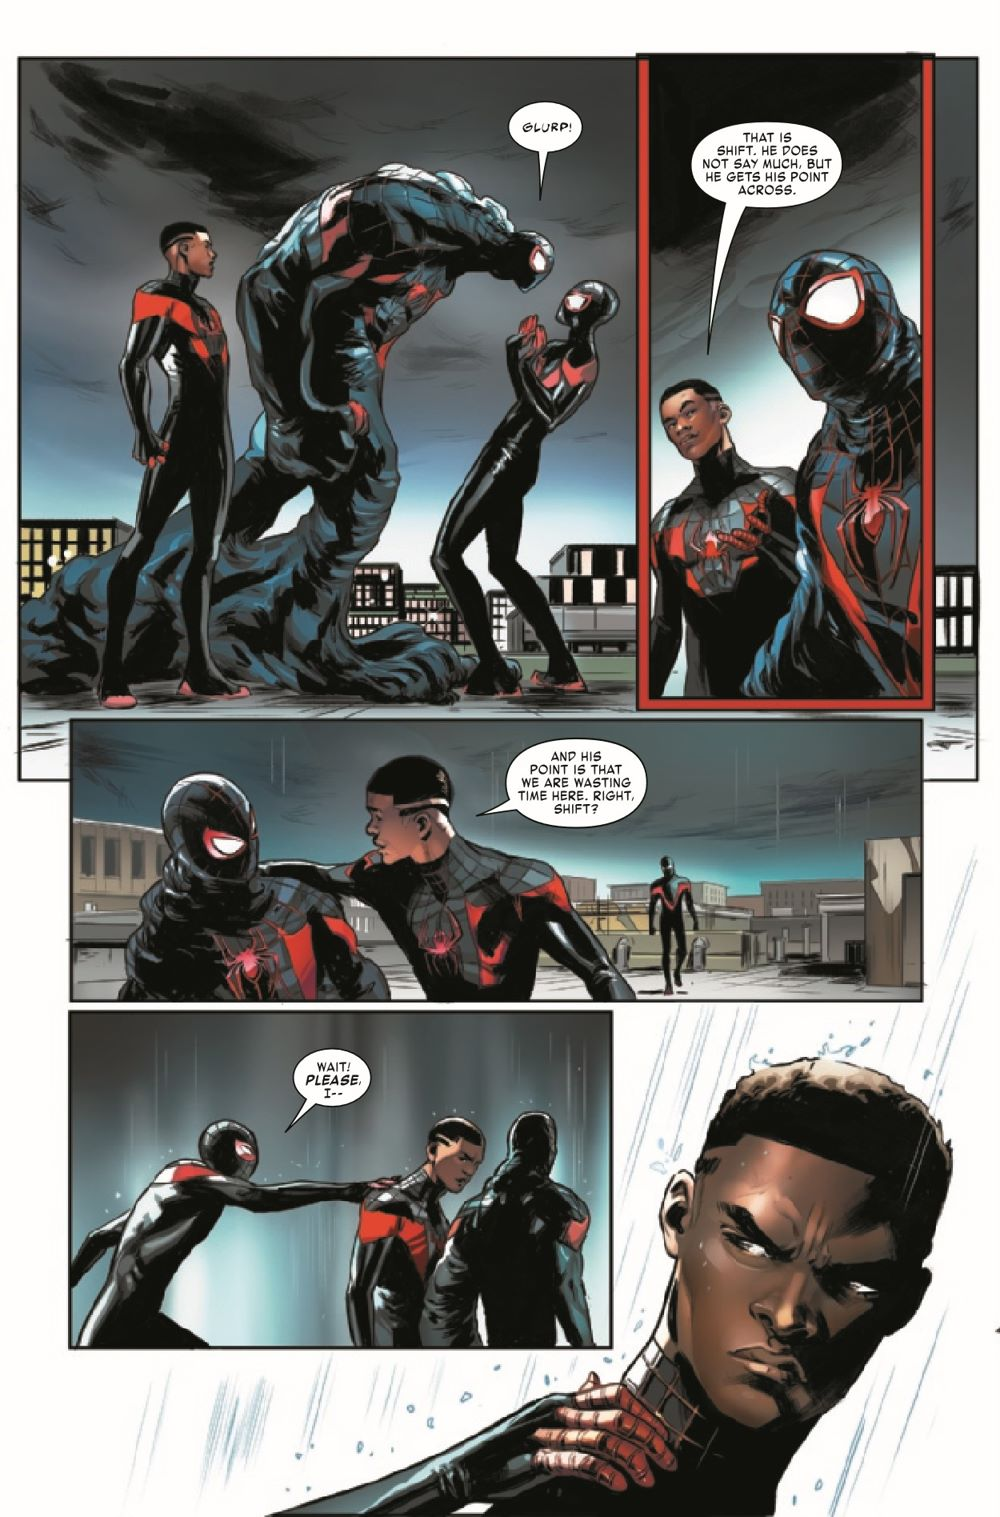 MMSM2018026_Preview-4 ComicList Previews: MILES MORALES SPIDER-MAN #26